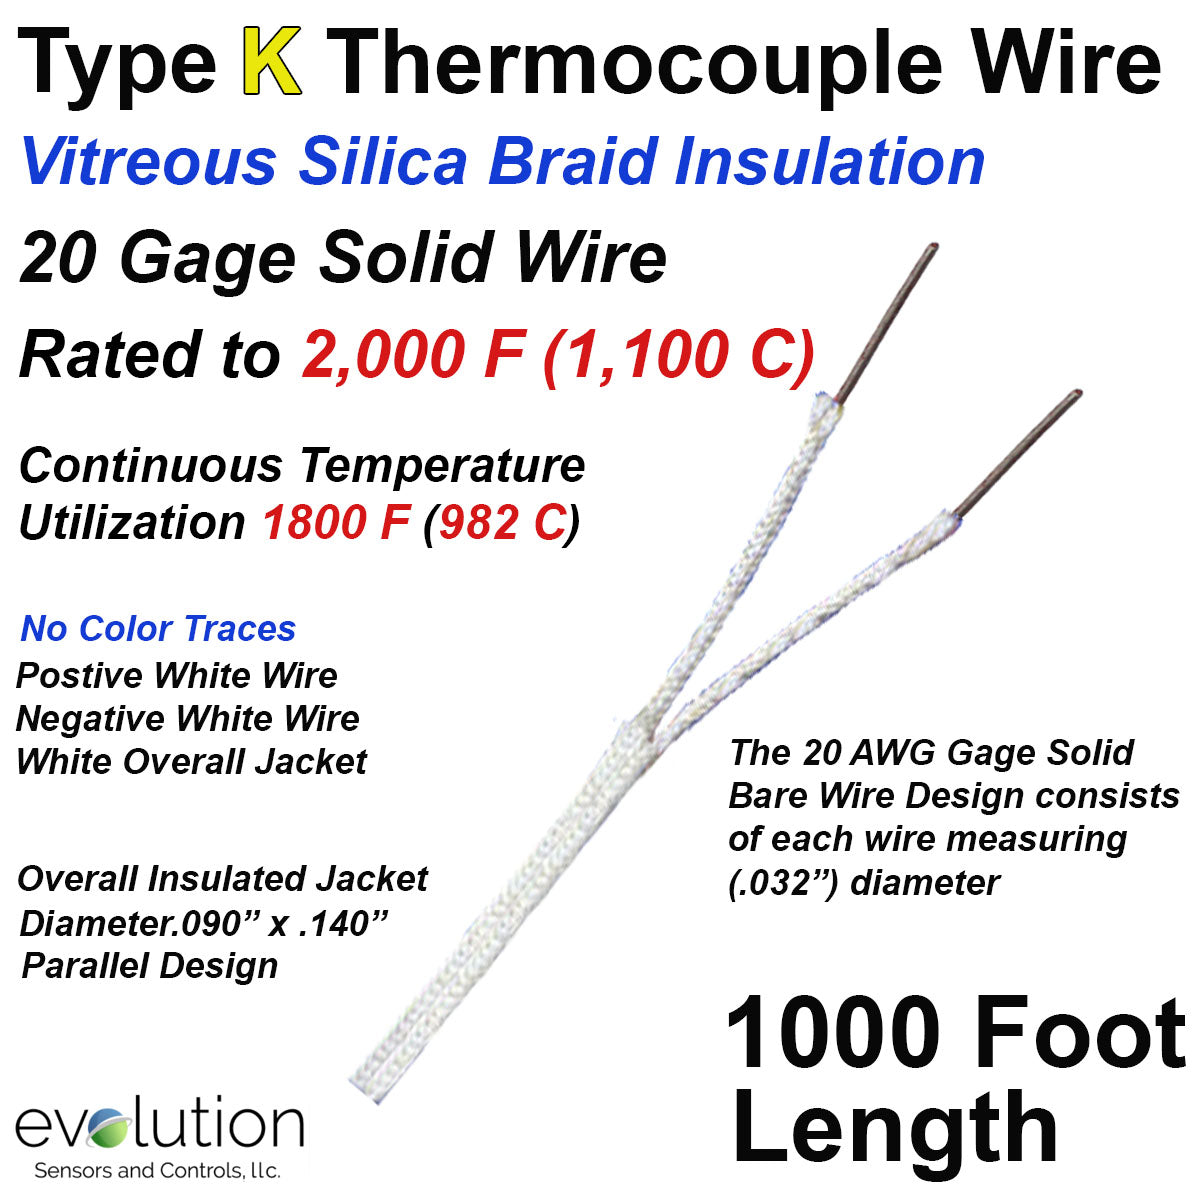 K-Type Thermocouple Wire PK-1000 Temperature Sensor Probe w High Temperature Ceramic Fiber Insulation 1832 F or 1000 C Extra Long 100 inch